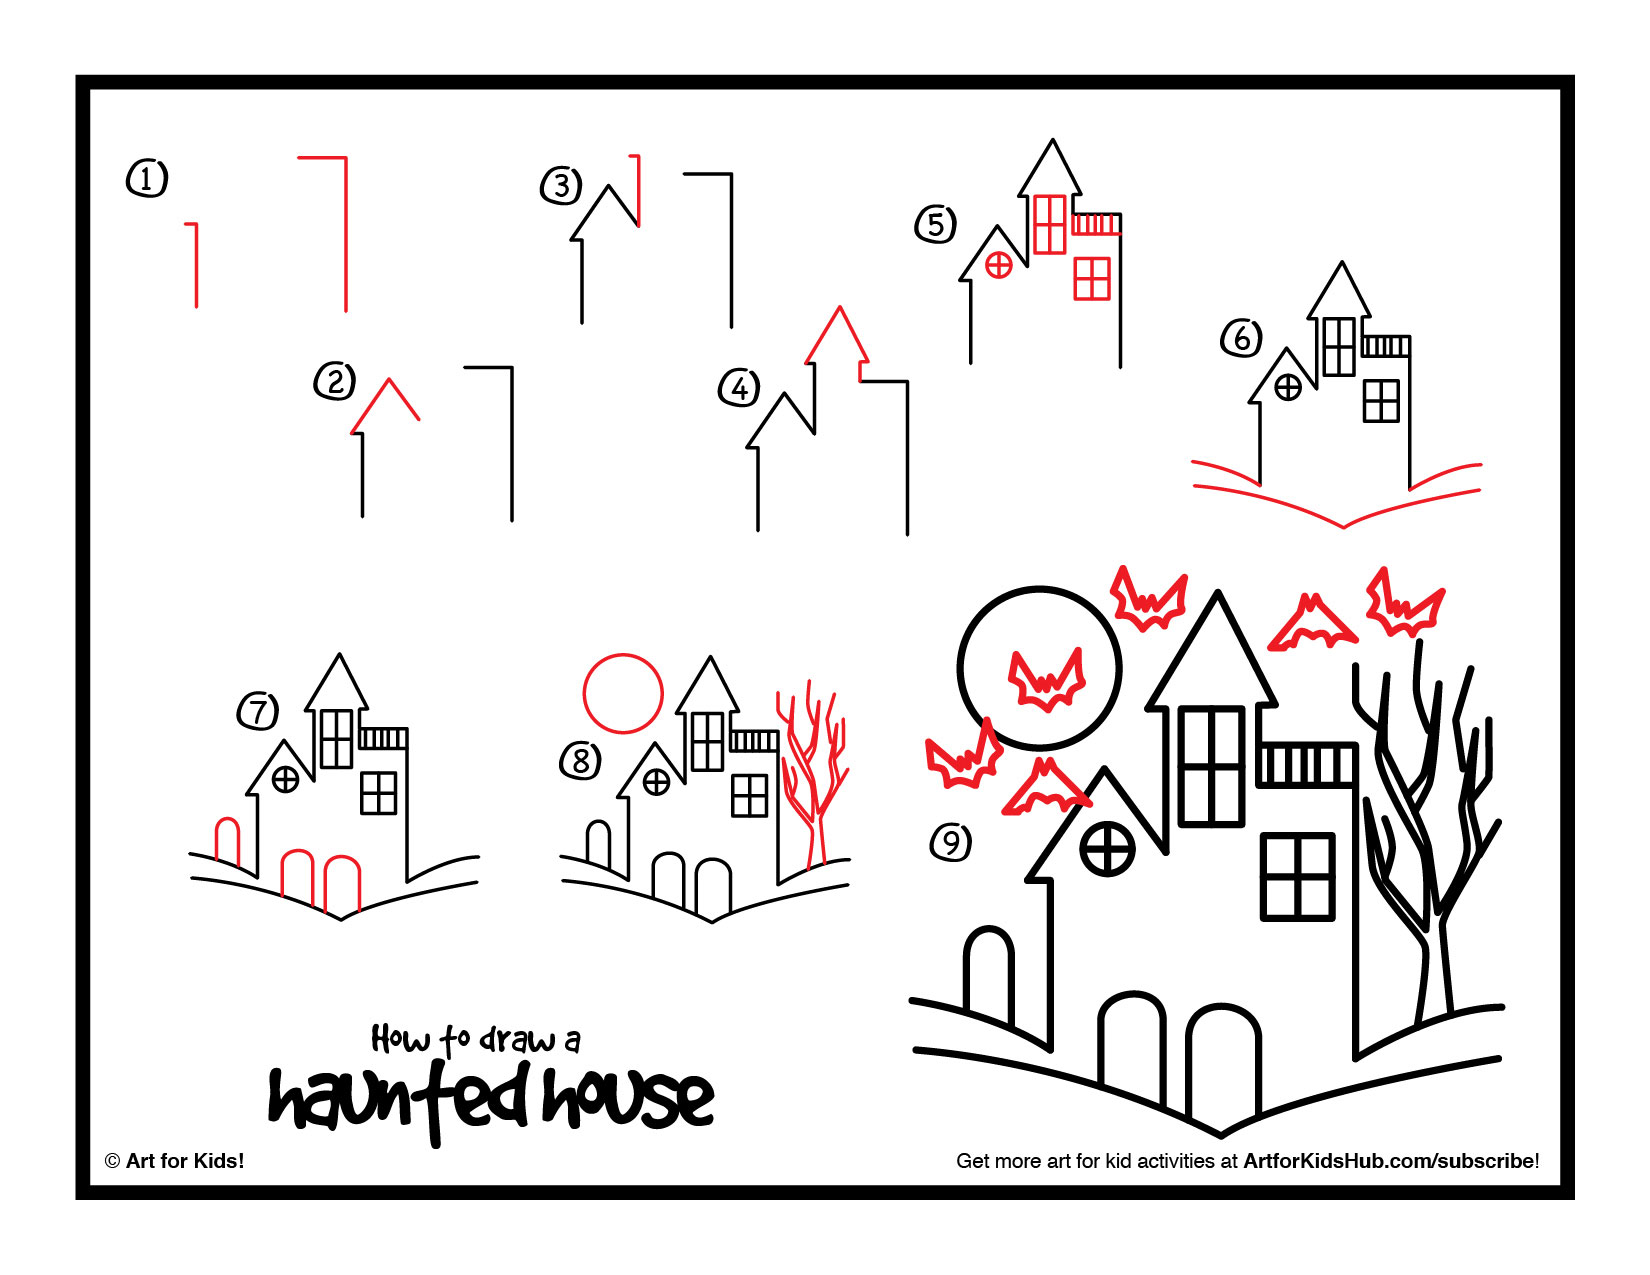 easy house drawing at getdrawings free for personal use easy Cat Anatomy Diagram Labeled 1650x1275 how to draw a haunted house